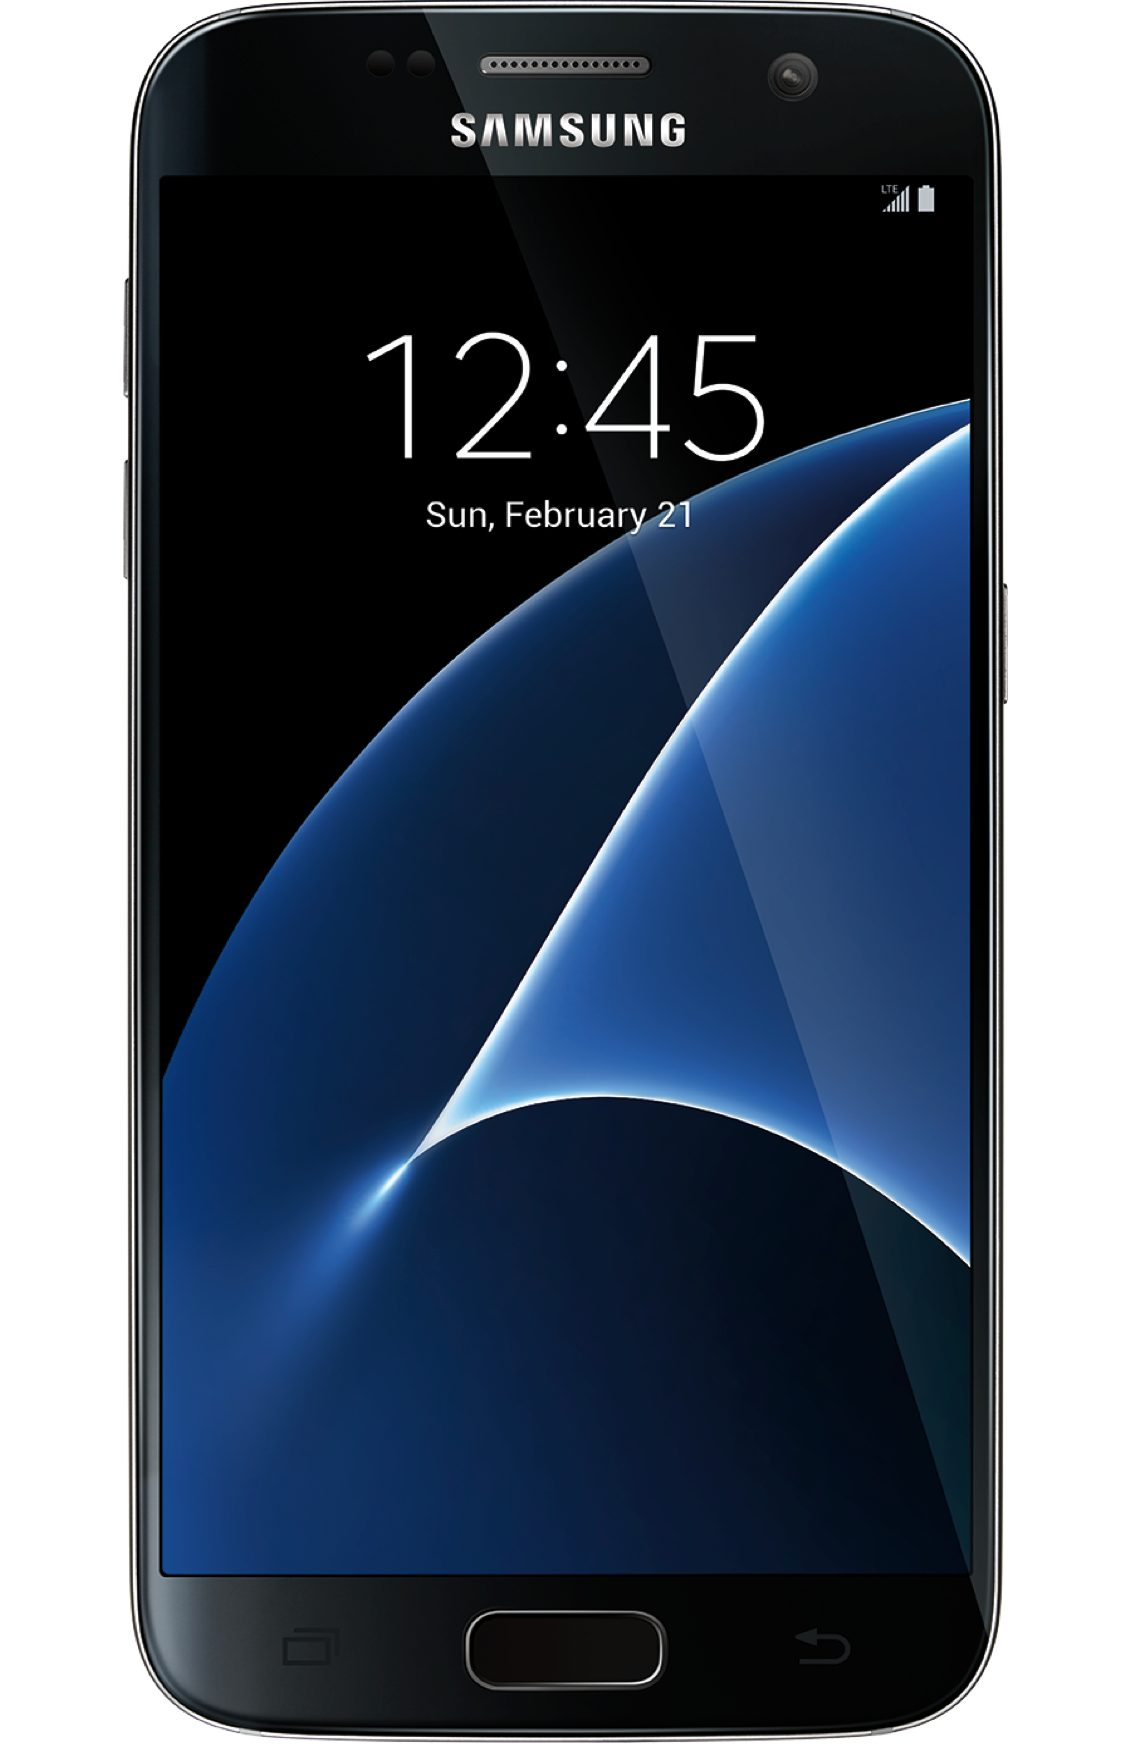 Samsung galaxy s7 features specs and reviews boost mobile galaxy s7 main image 1 reheart Images